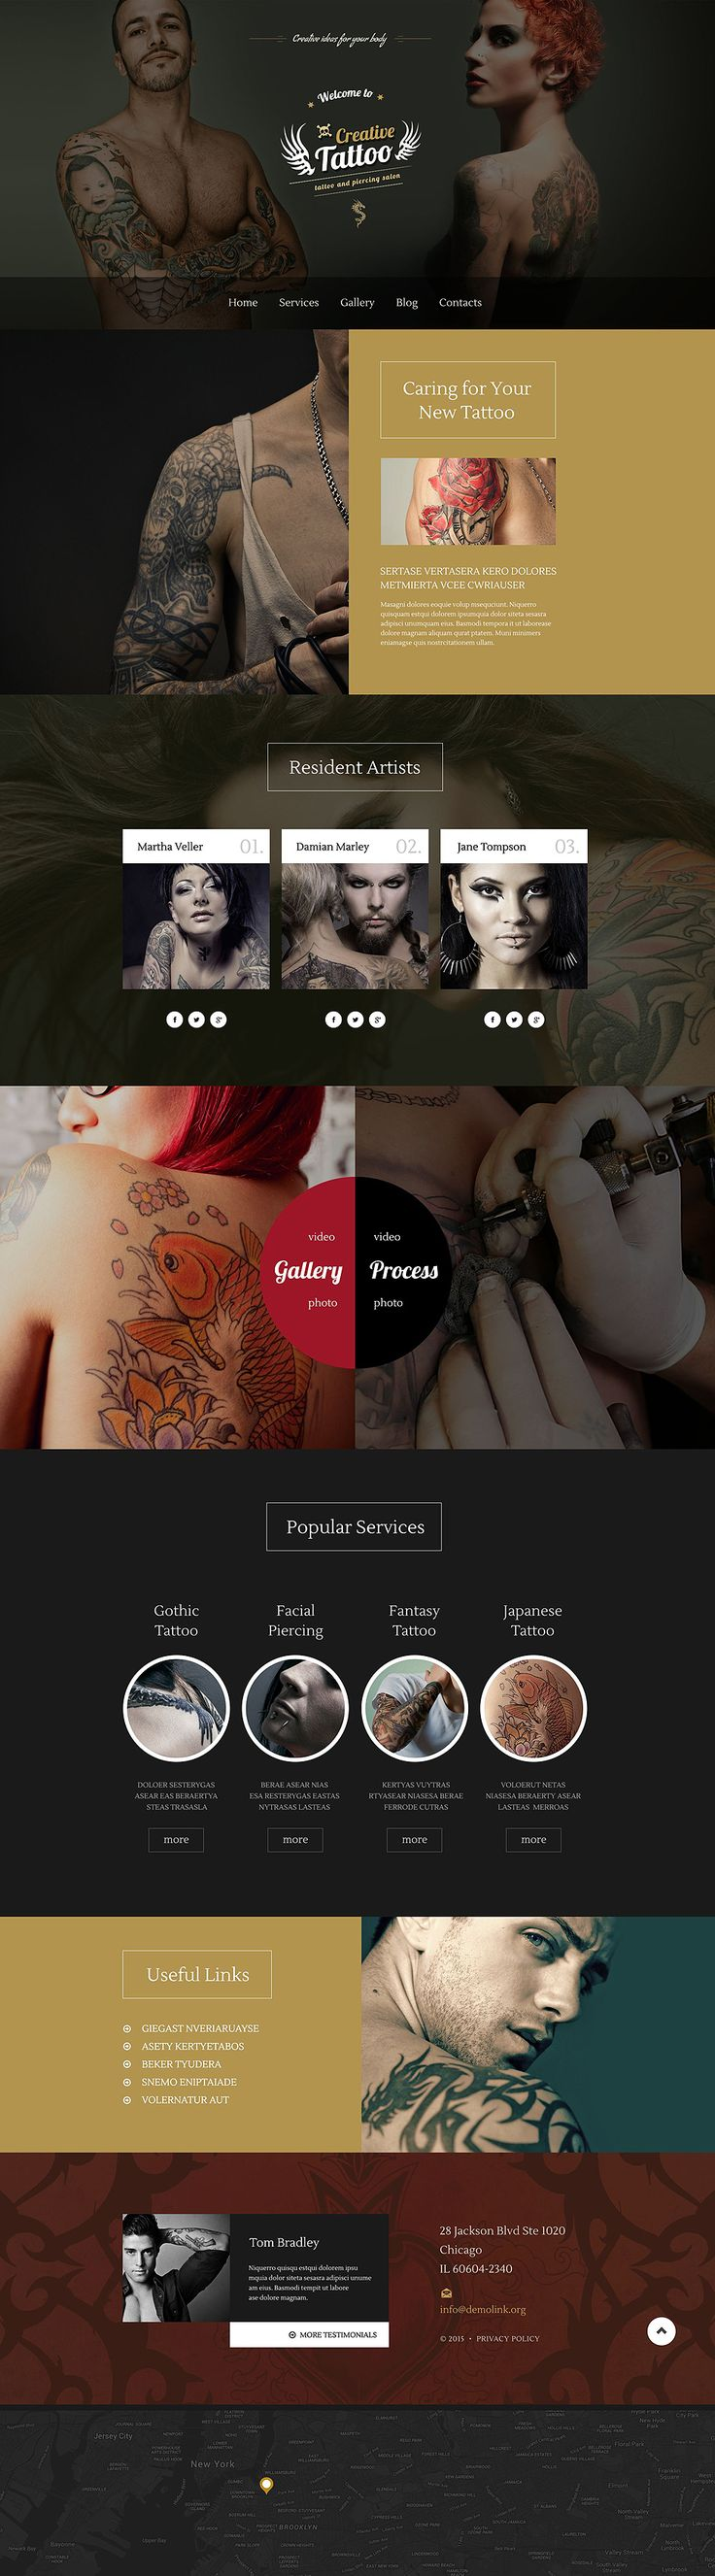 Show off the #art of #tattooing with flair using this image-rich #WordPress theme.